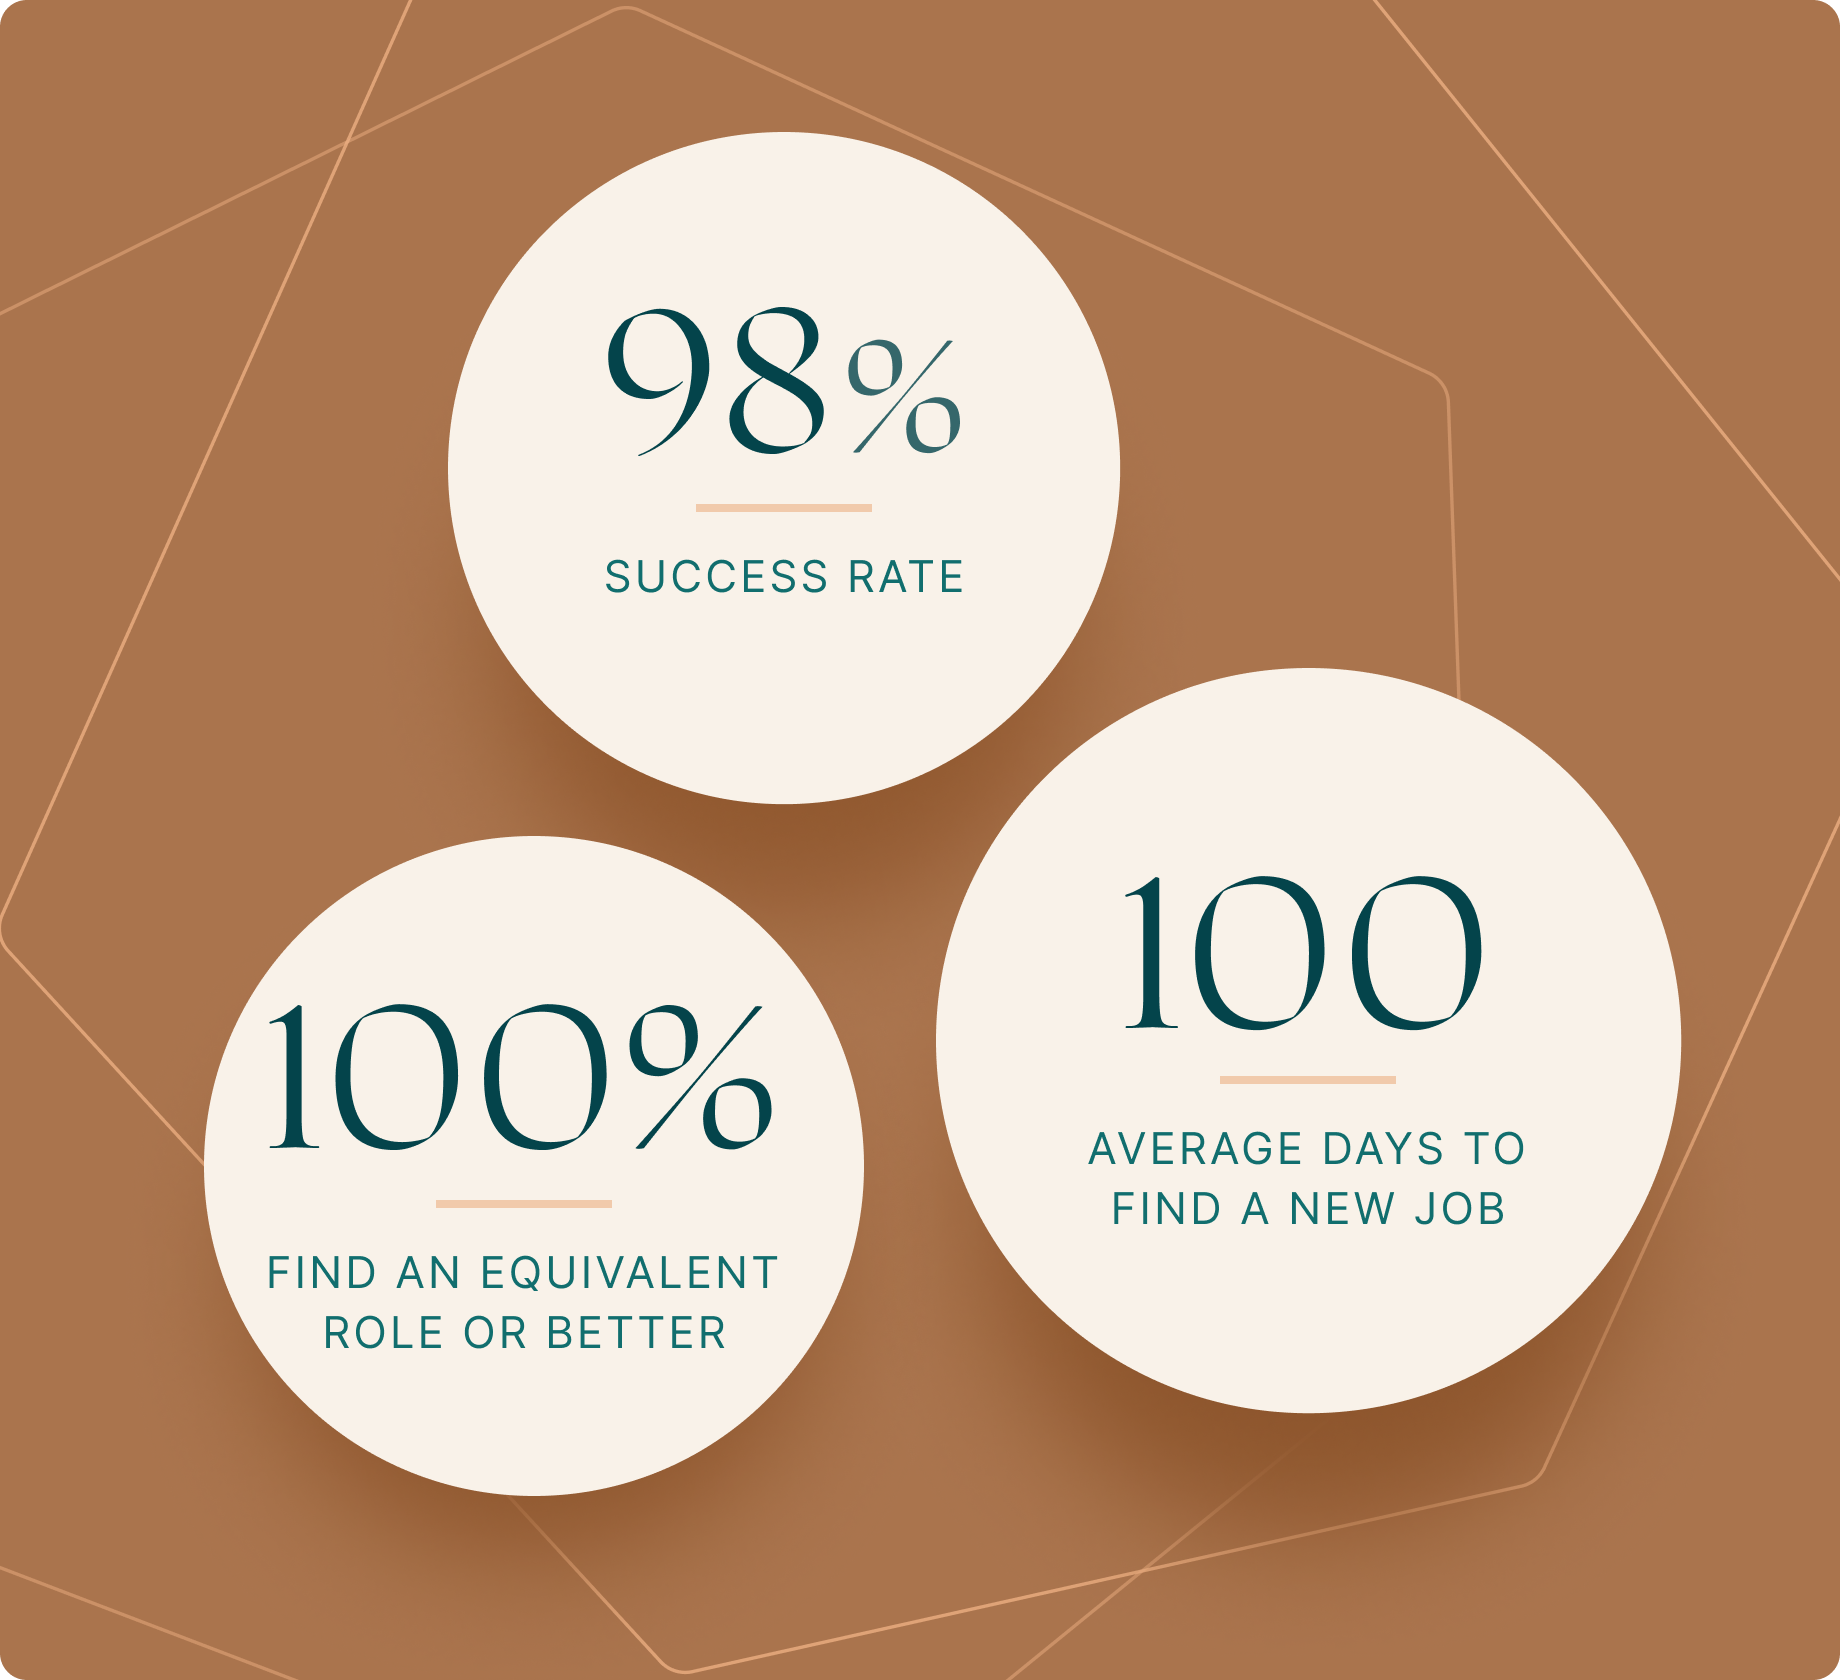 Find your next executive job in 100 days